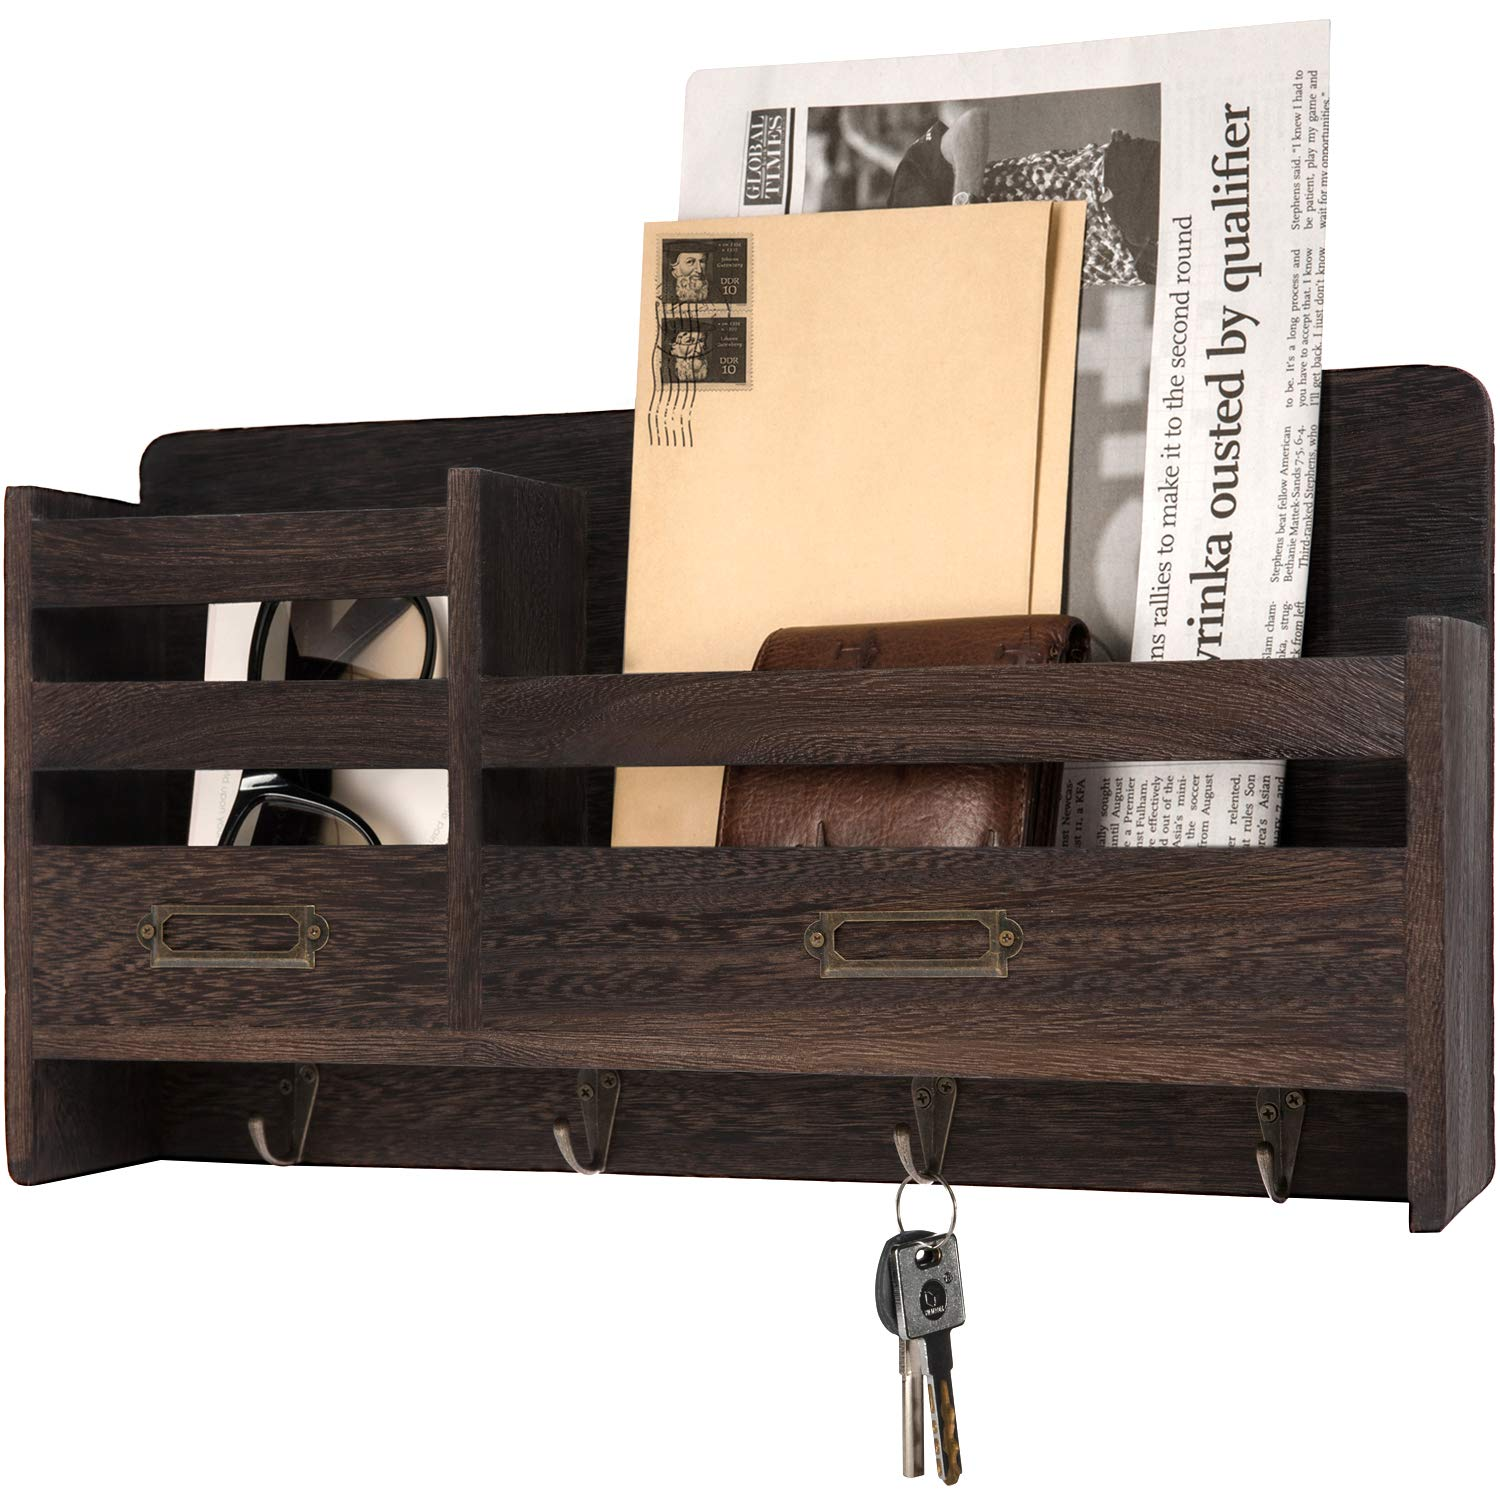 Mkono Mail Sorter Organizer Wood Key Holder Organizer for Wall, Rustic 2-Slot Wall Mail Holder with Tags Frame & 4 Key Hook Rack for Entryroom, mudroom,Hallway, Kitchen, Office,Dark Brown by Mkono